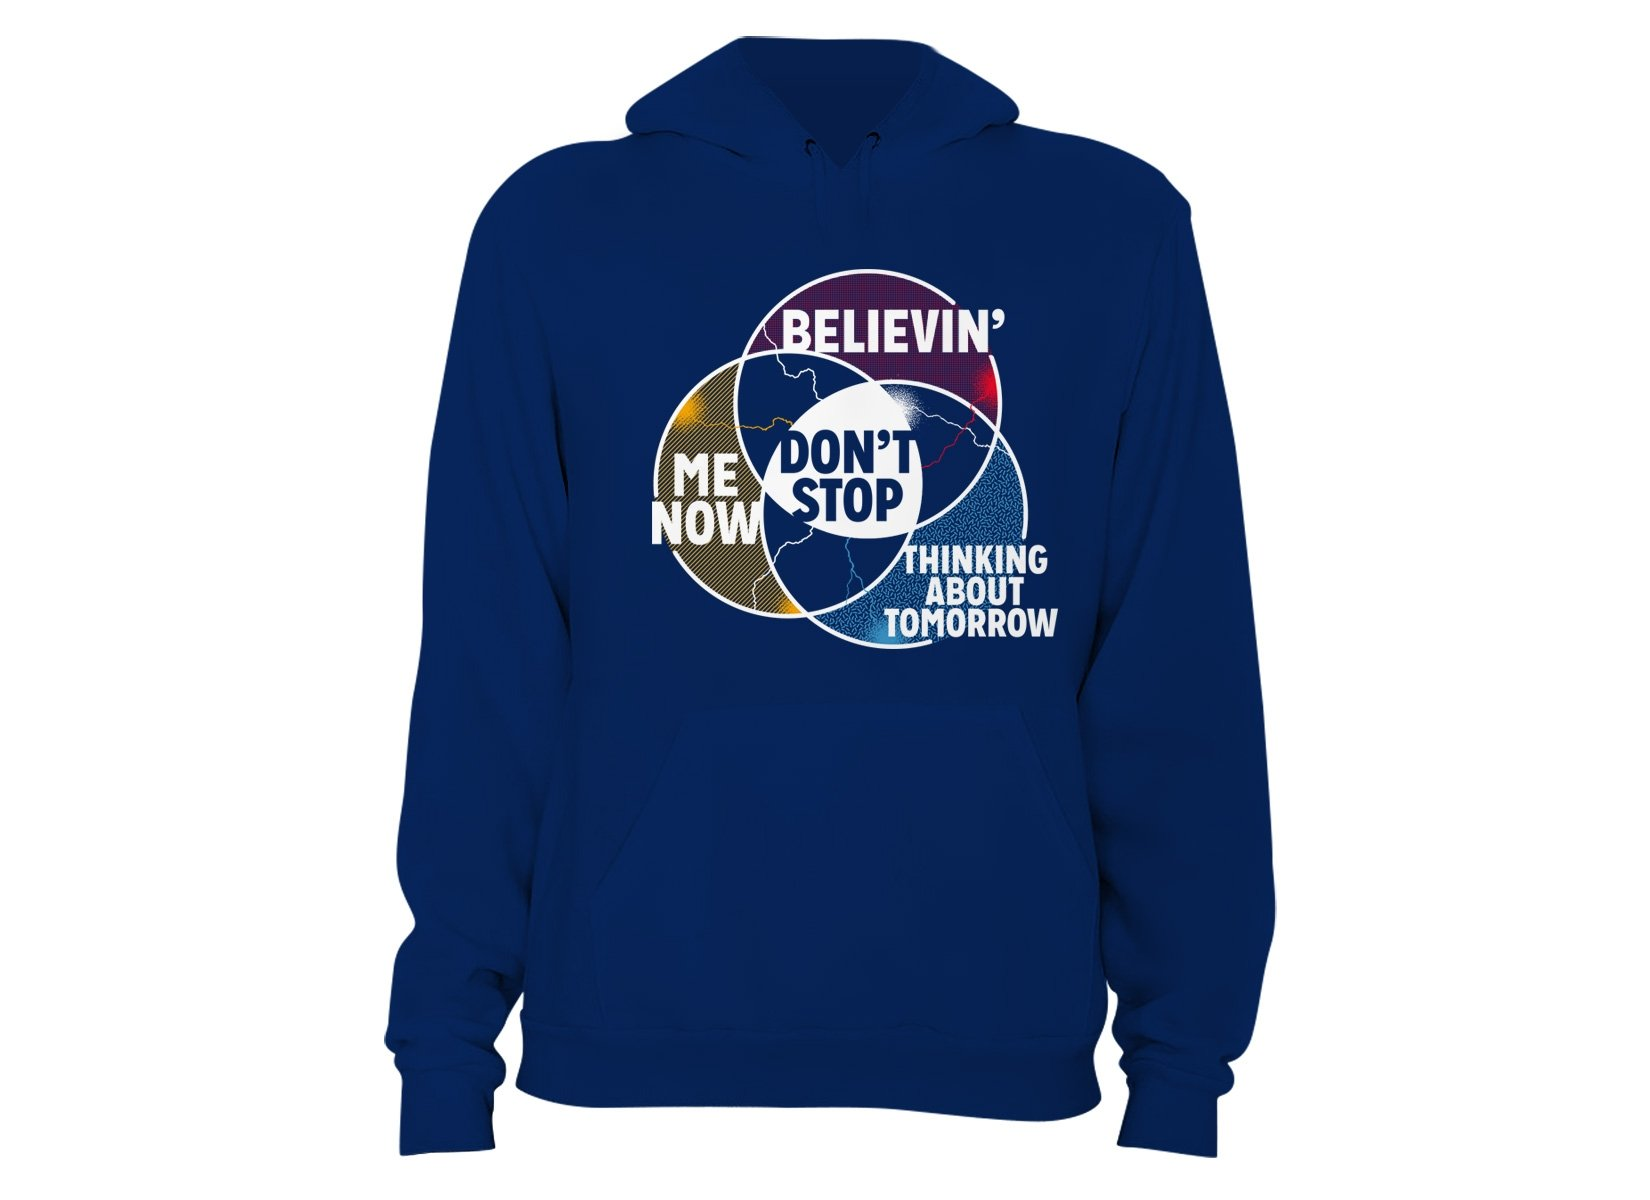 Don't Stop Venn Diagram on Hoodie